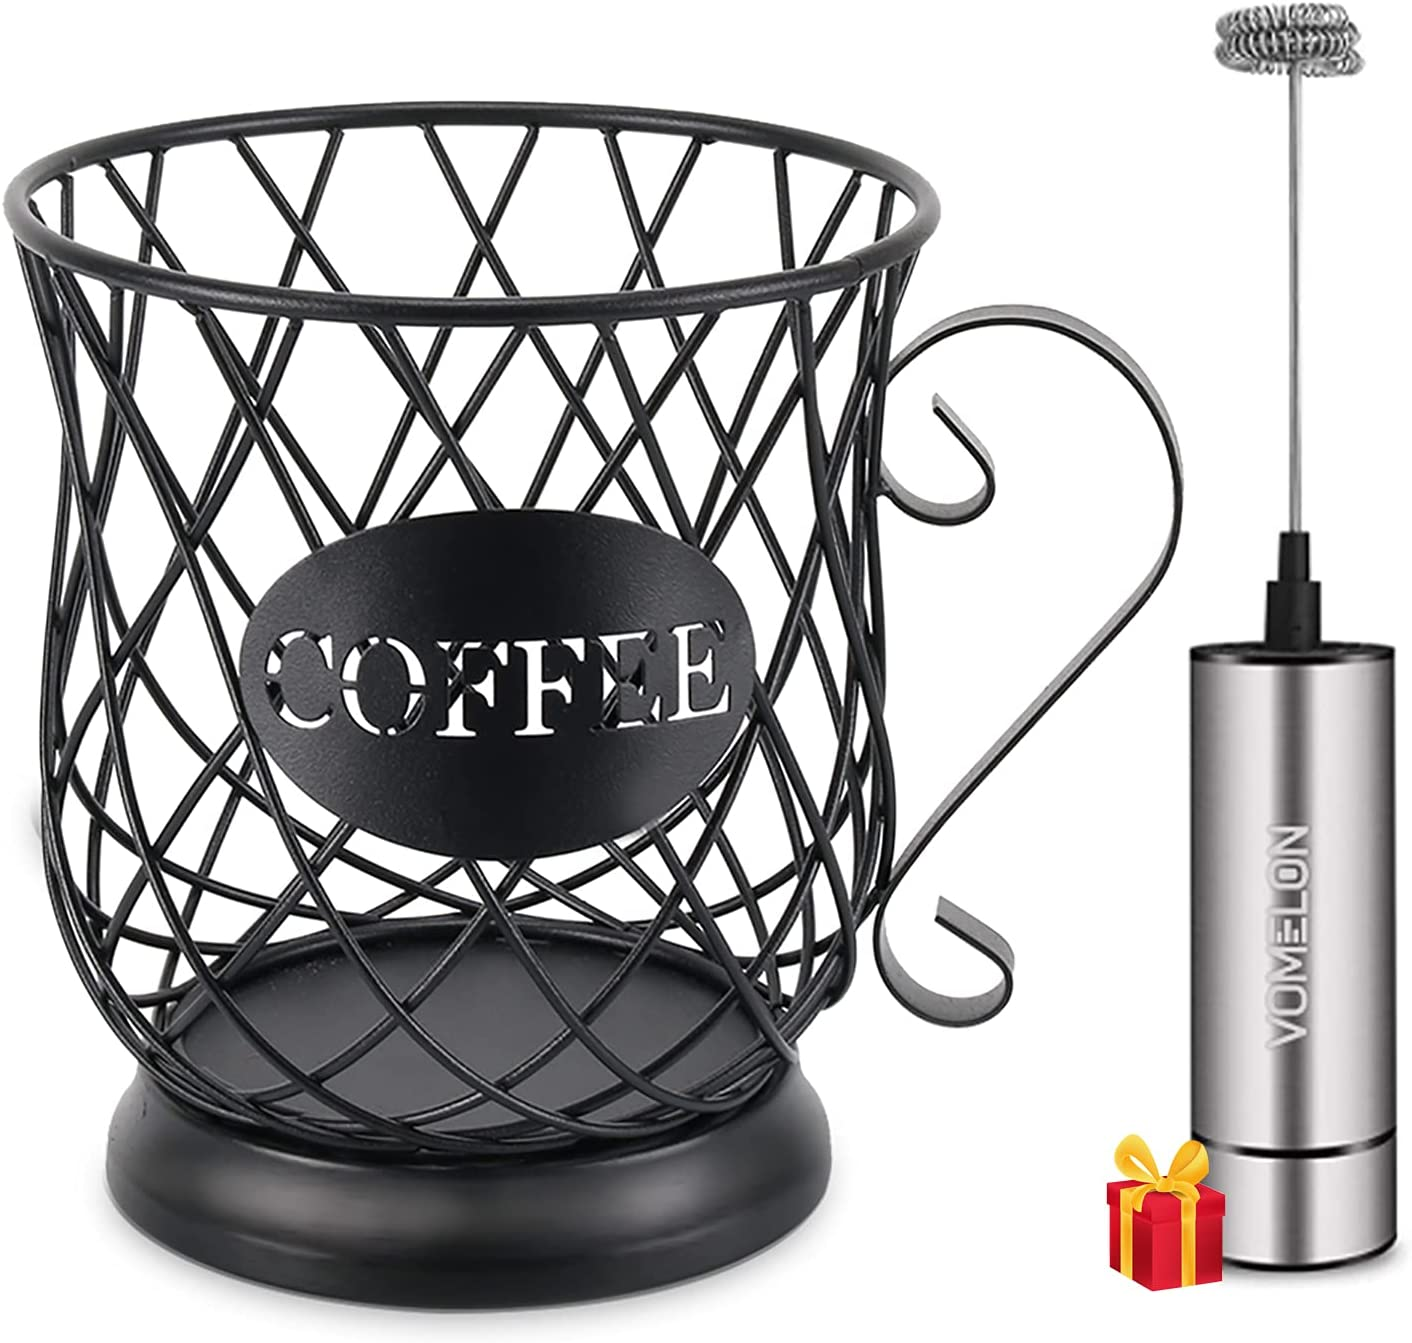 Coffee Pod 2021 autumn and winter new Holder K Cup for counter Holders Stora Special price